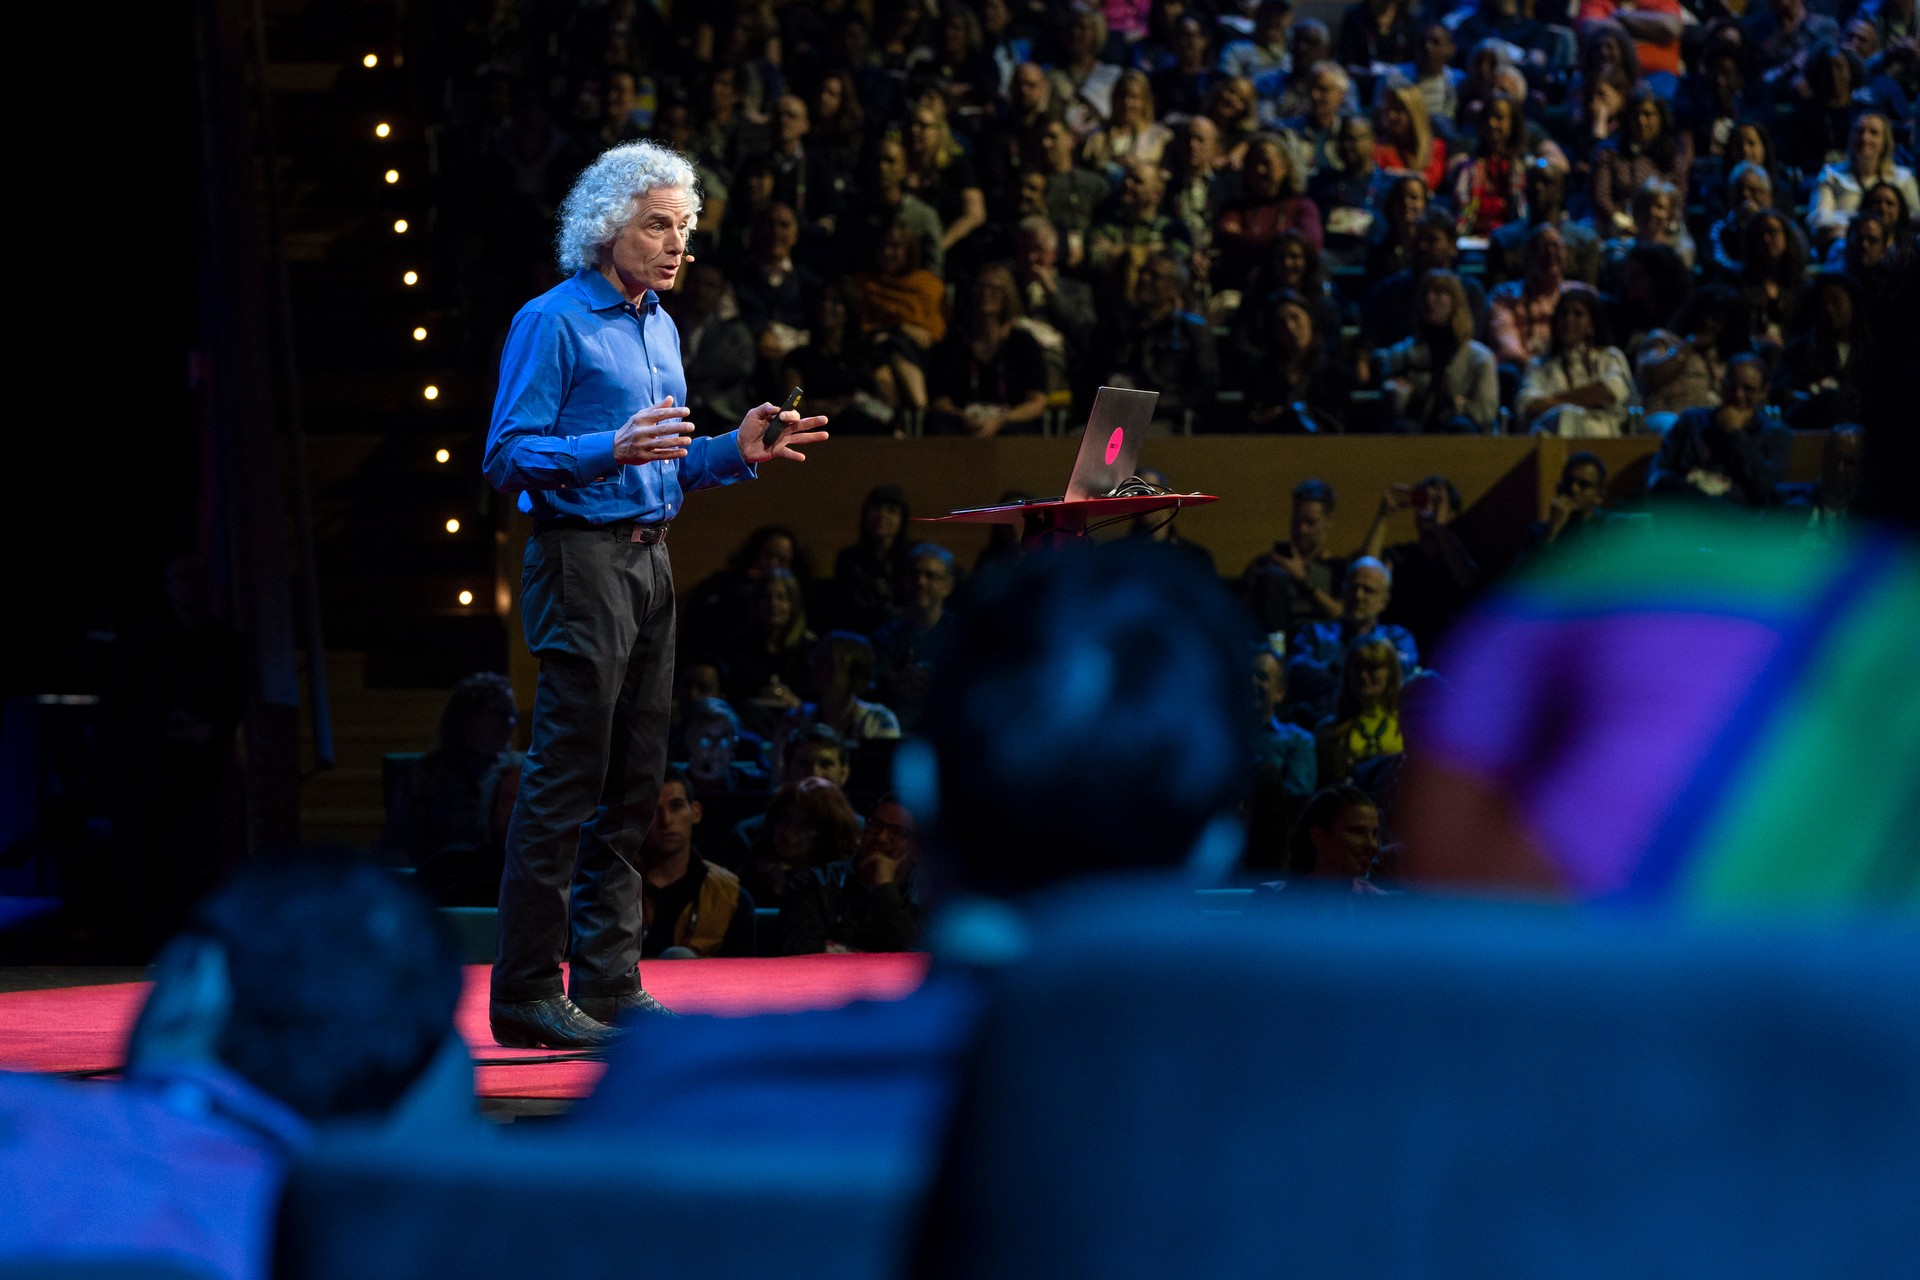 Steven Pinker speaks at TED2018 - The Age of Amazement, April 10 - 14, 2018, Vancouver, BC, Canada. Photo: Ryan Lash / TED